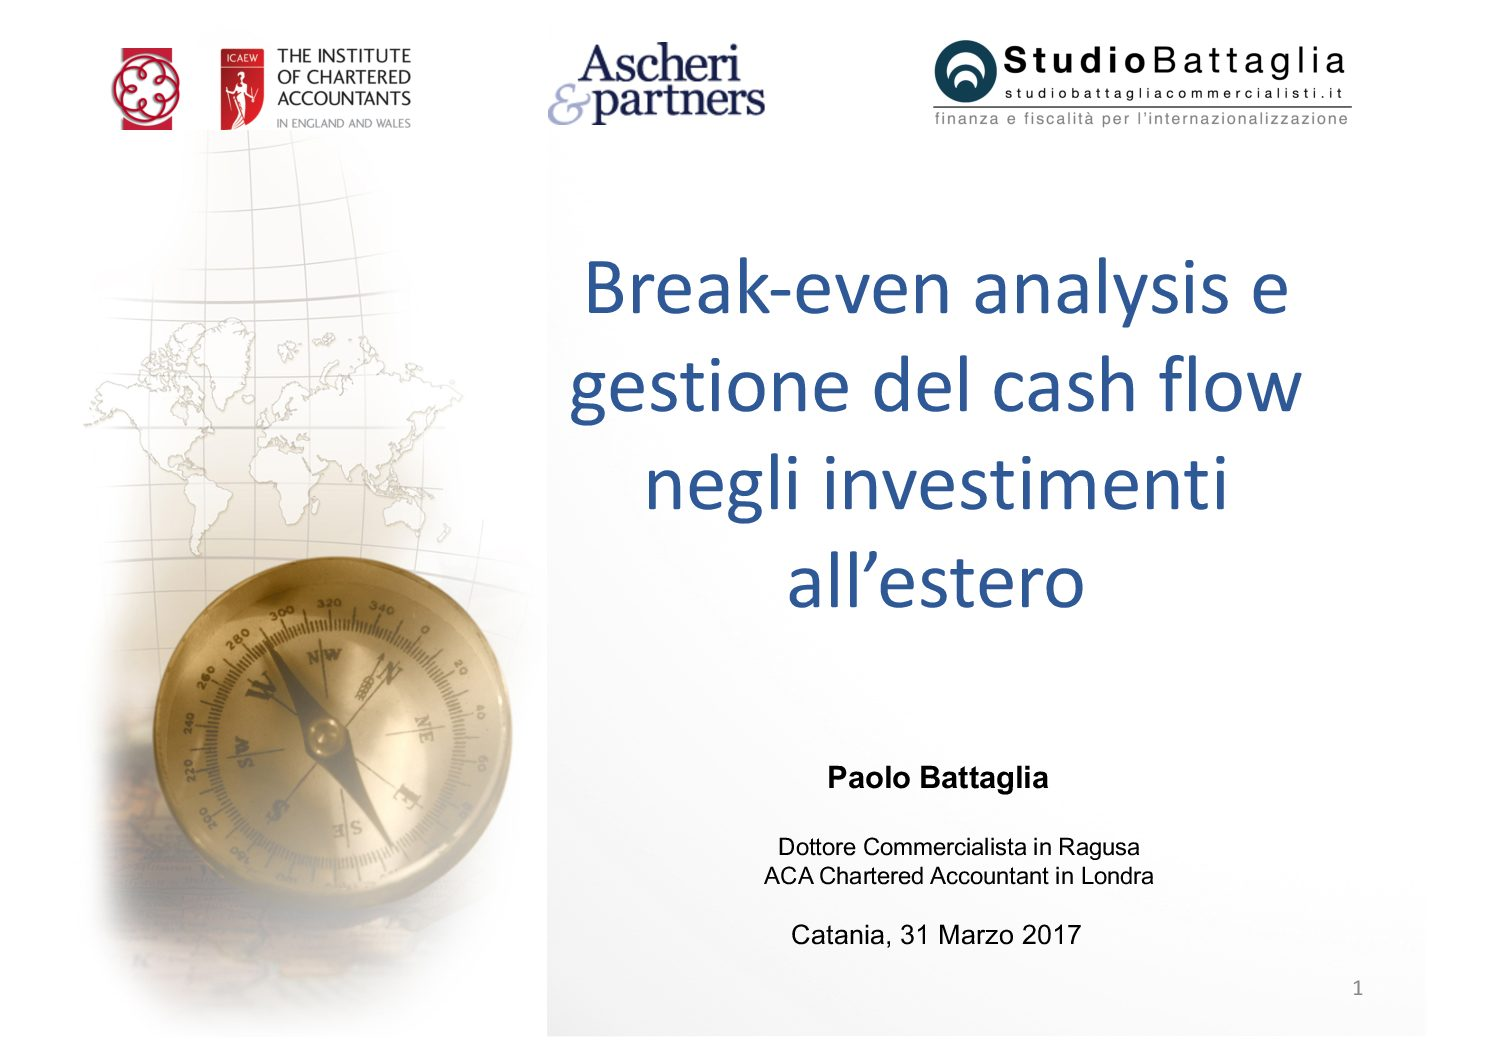 Slide. Break-even analysis e Flussi di cassa negli investimenti all'estero. Catania 31.03.2017